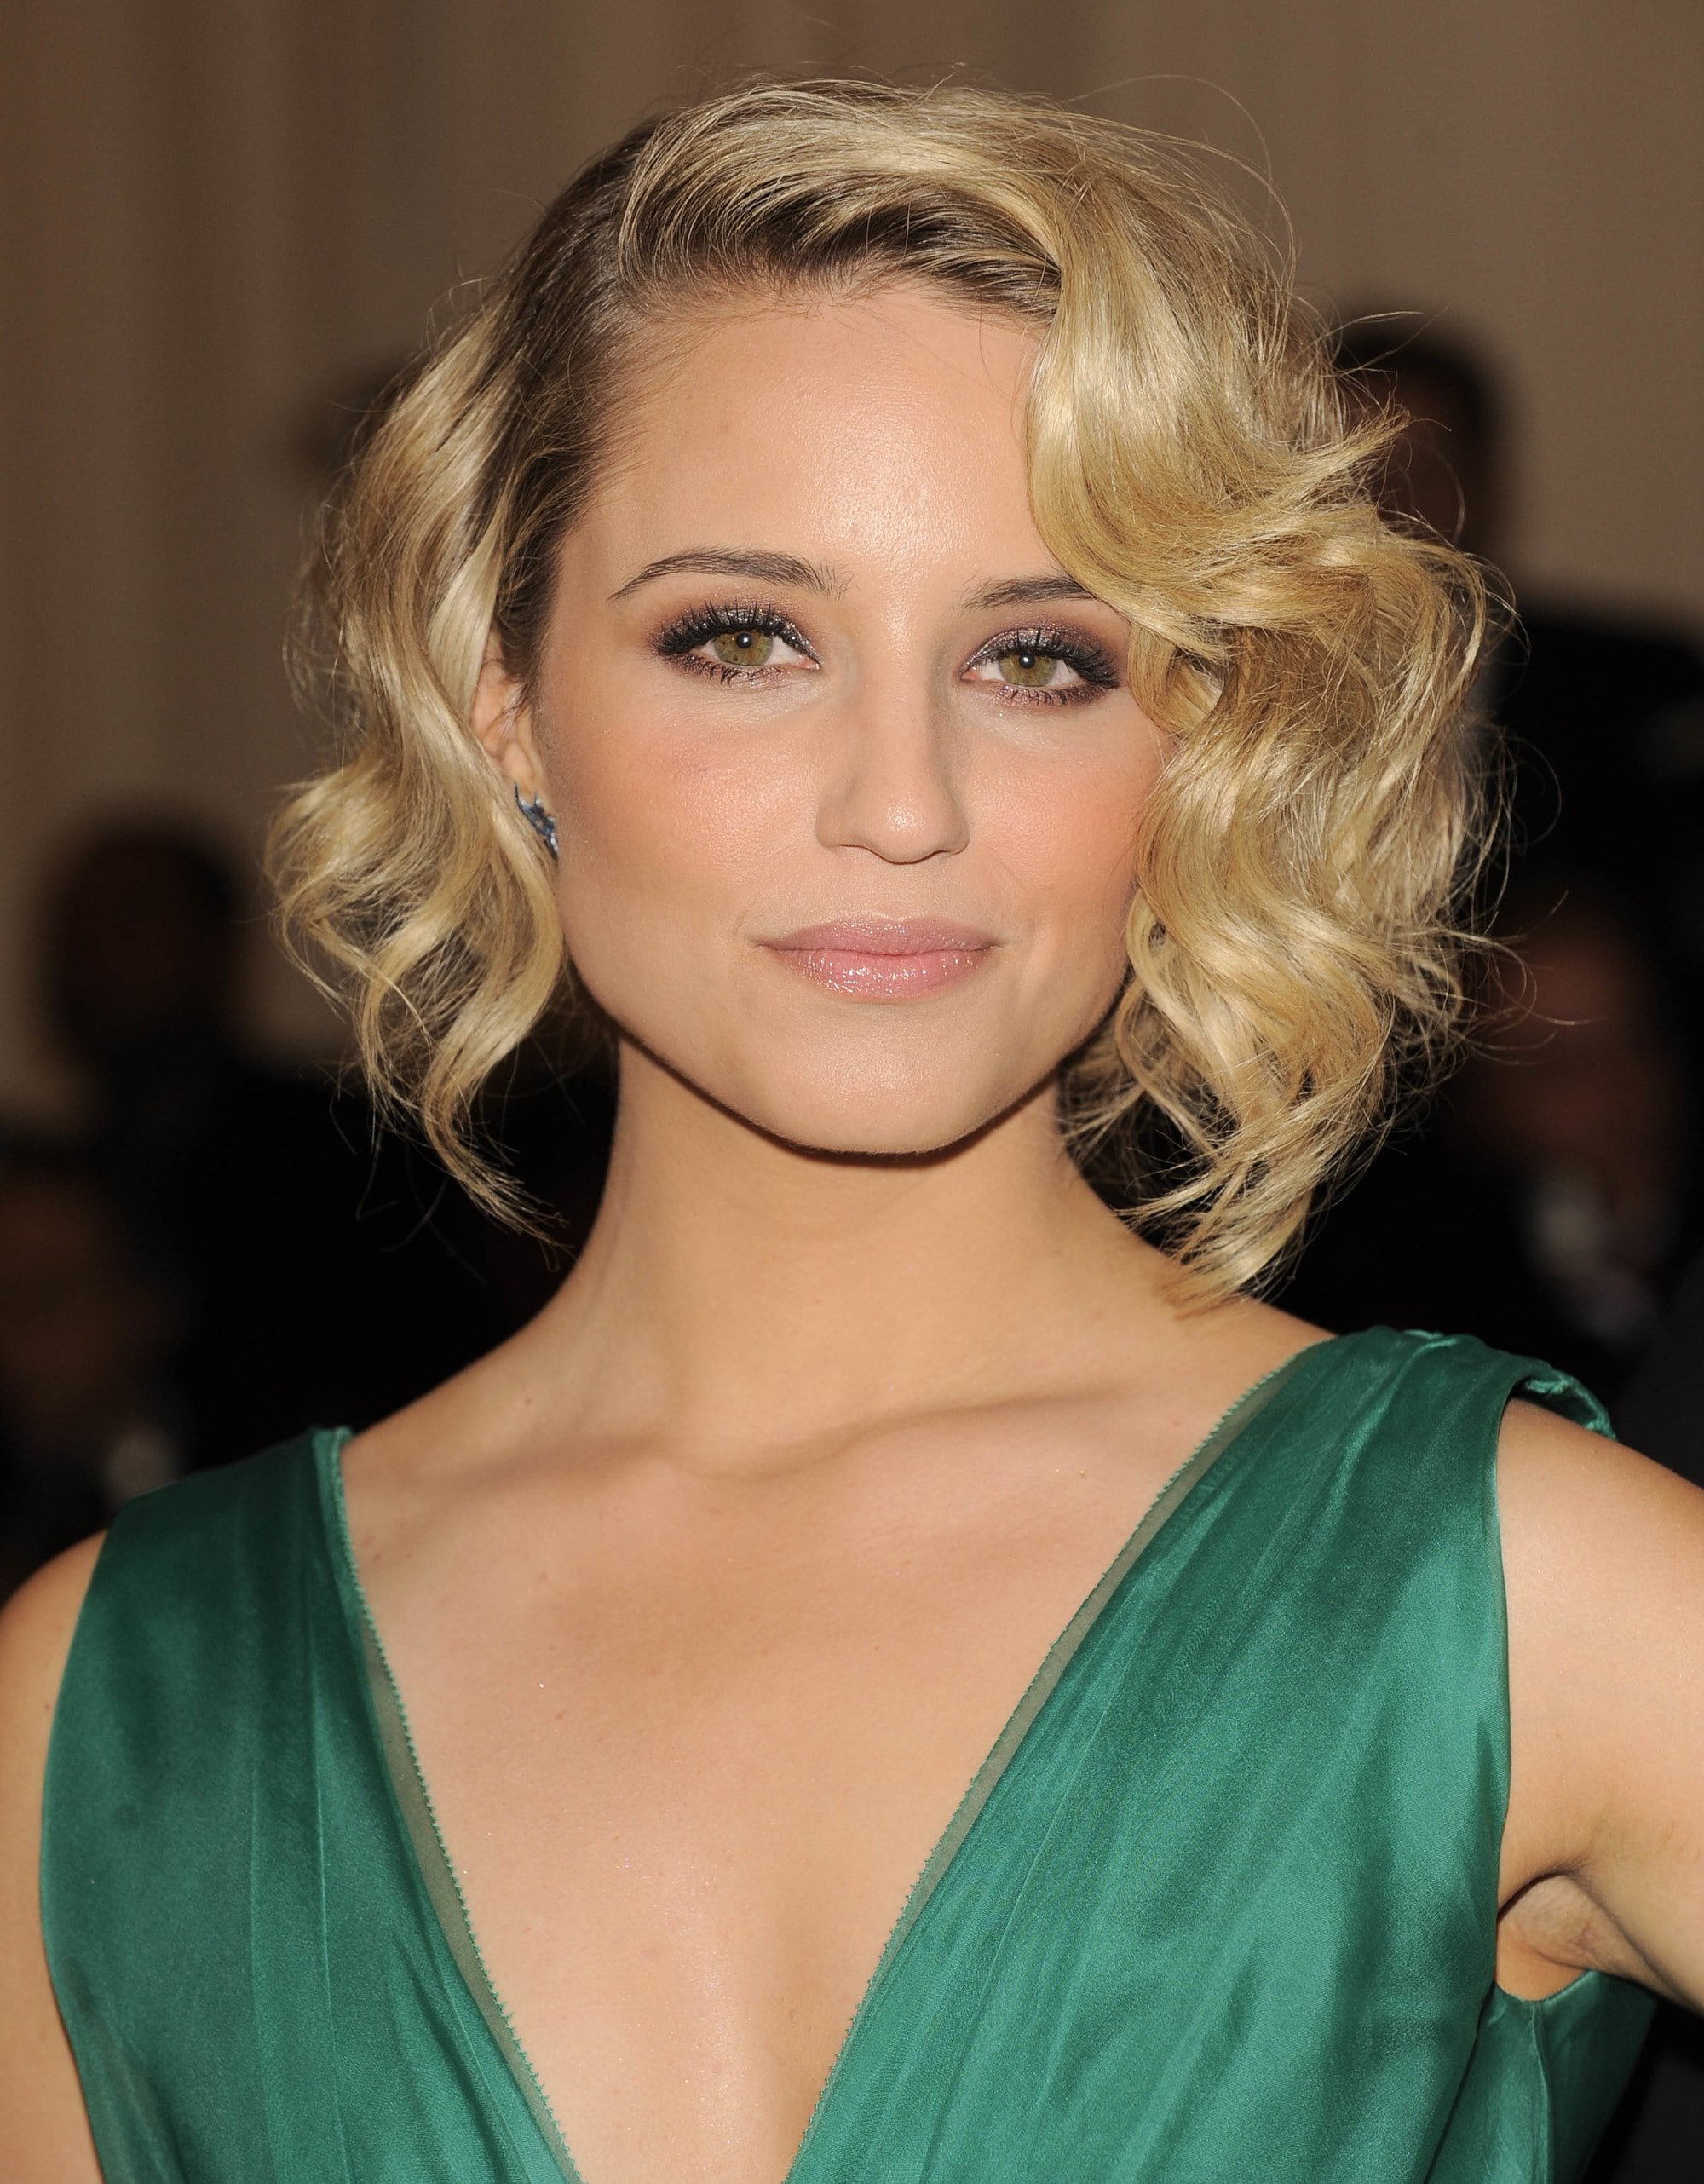 Dianna Agron with a short blonde retro curly bob